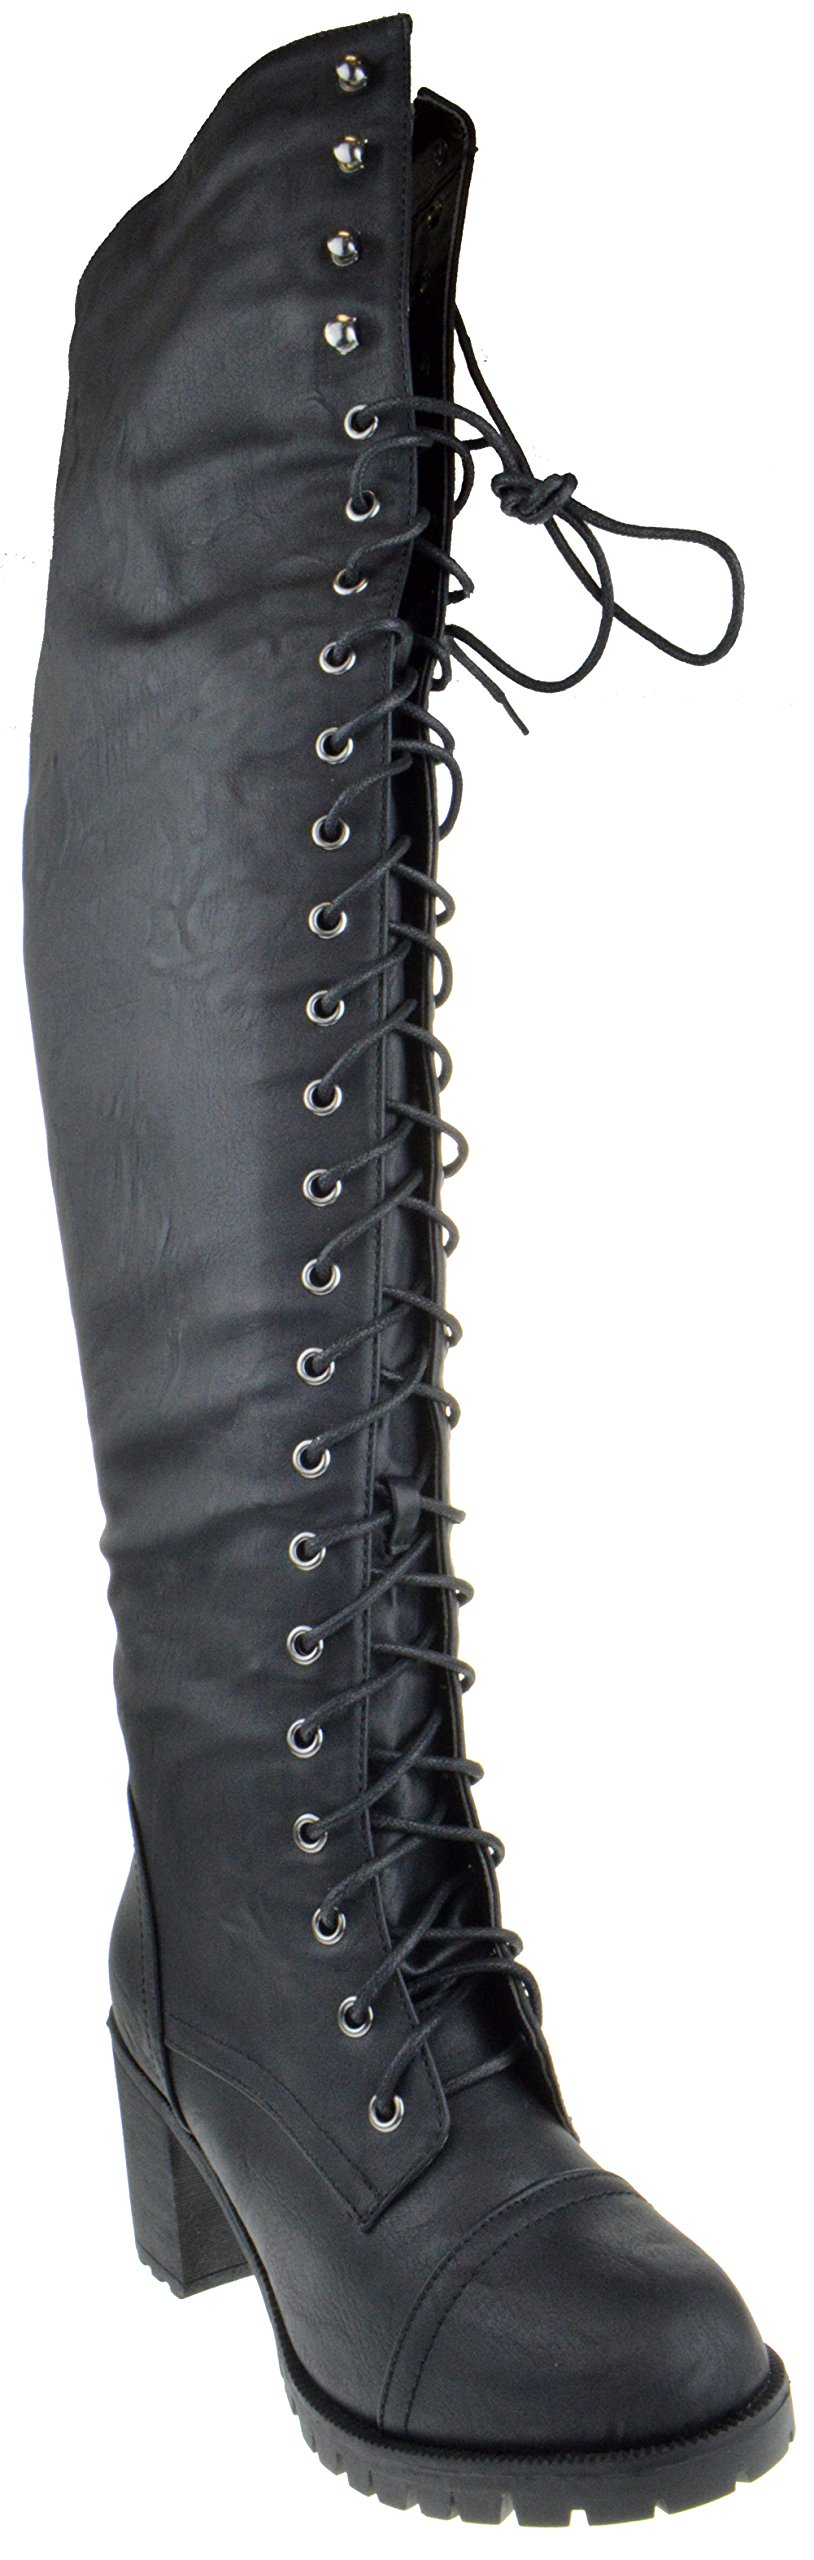 Shoe Dezigns Illusion 01 Ok Womens Thigh High Lace up Chunk Heel Combat Boots,Black,8.5